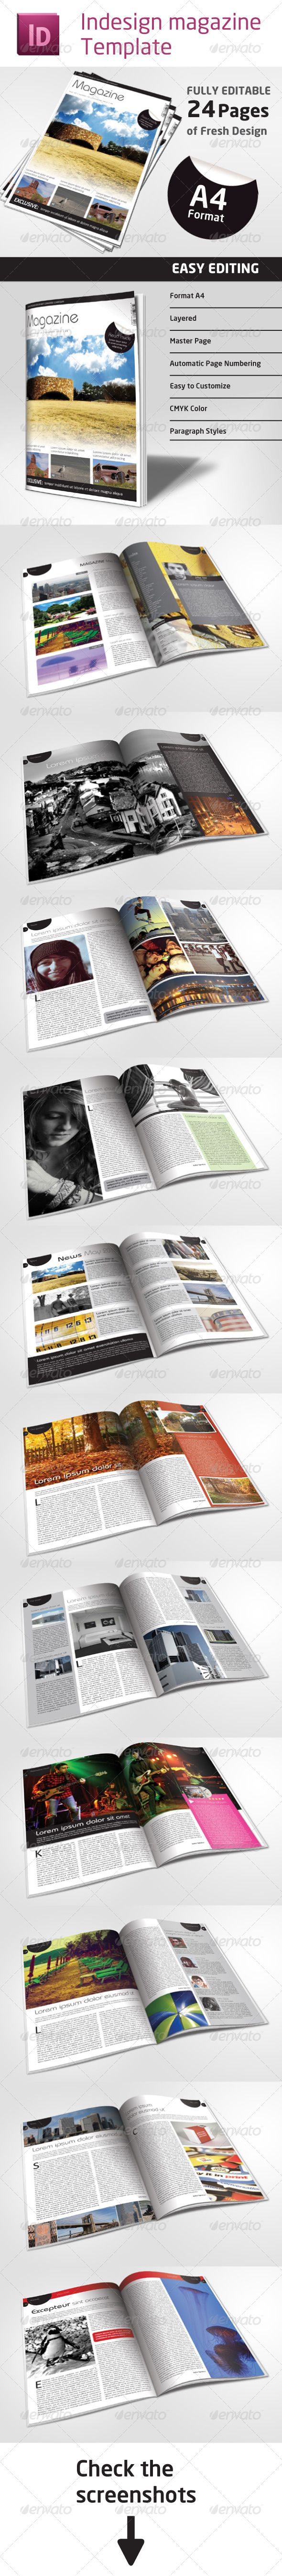 24 Pages Magazine Template in A4 Format #GraphicRiver 24 pages Indesign Magazine Template in A4 format. This Indesign fresh, nice looking magazine template contains fully editable 24 pages, which can fit any needs. (company, town, agency, organization or any other institution …) Features: - 24 fully editable pages - Double page layout - Master pages and automatic page numbering - A4 Format (210×297mm or 8.27×11.69) - All colors in CMYK (text and objects) - All colors, text and objects are…